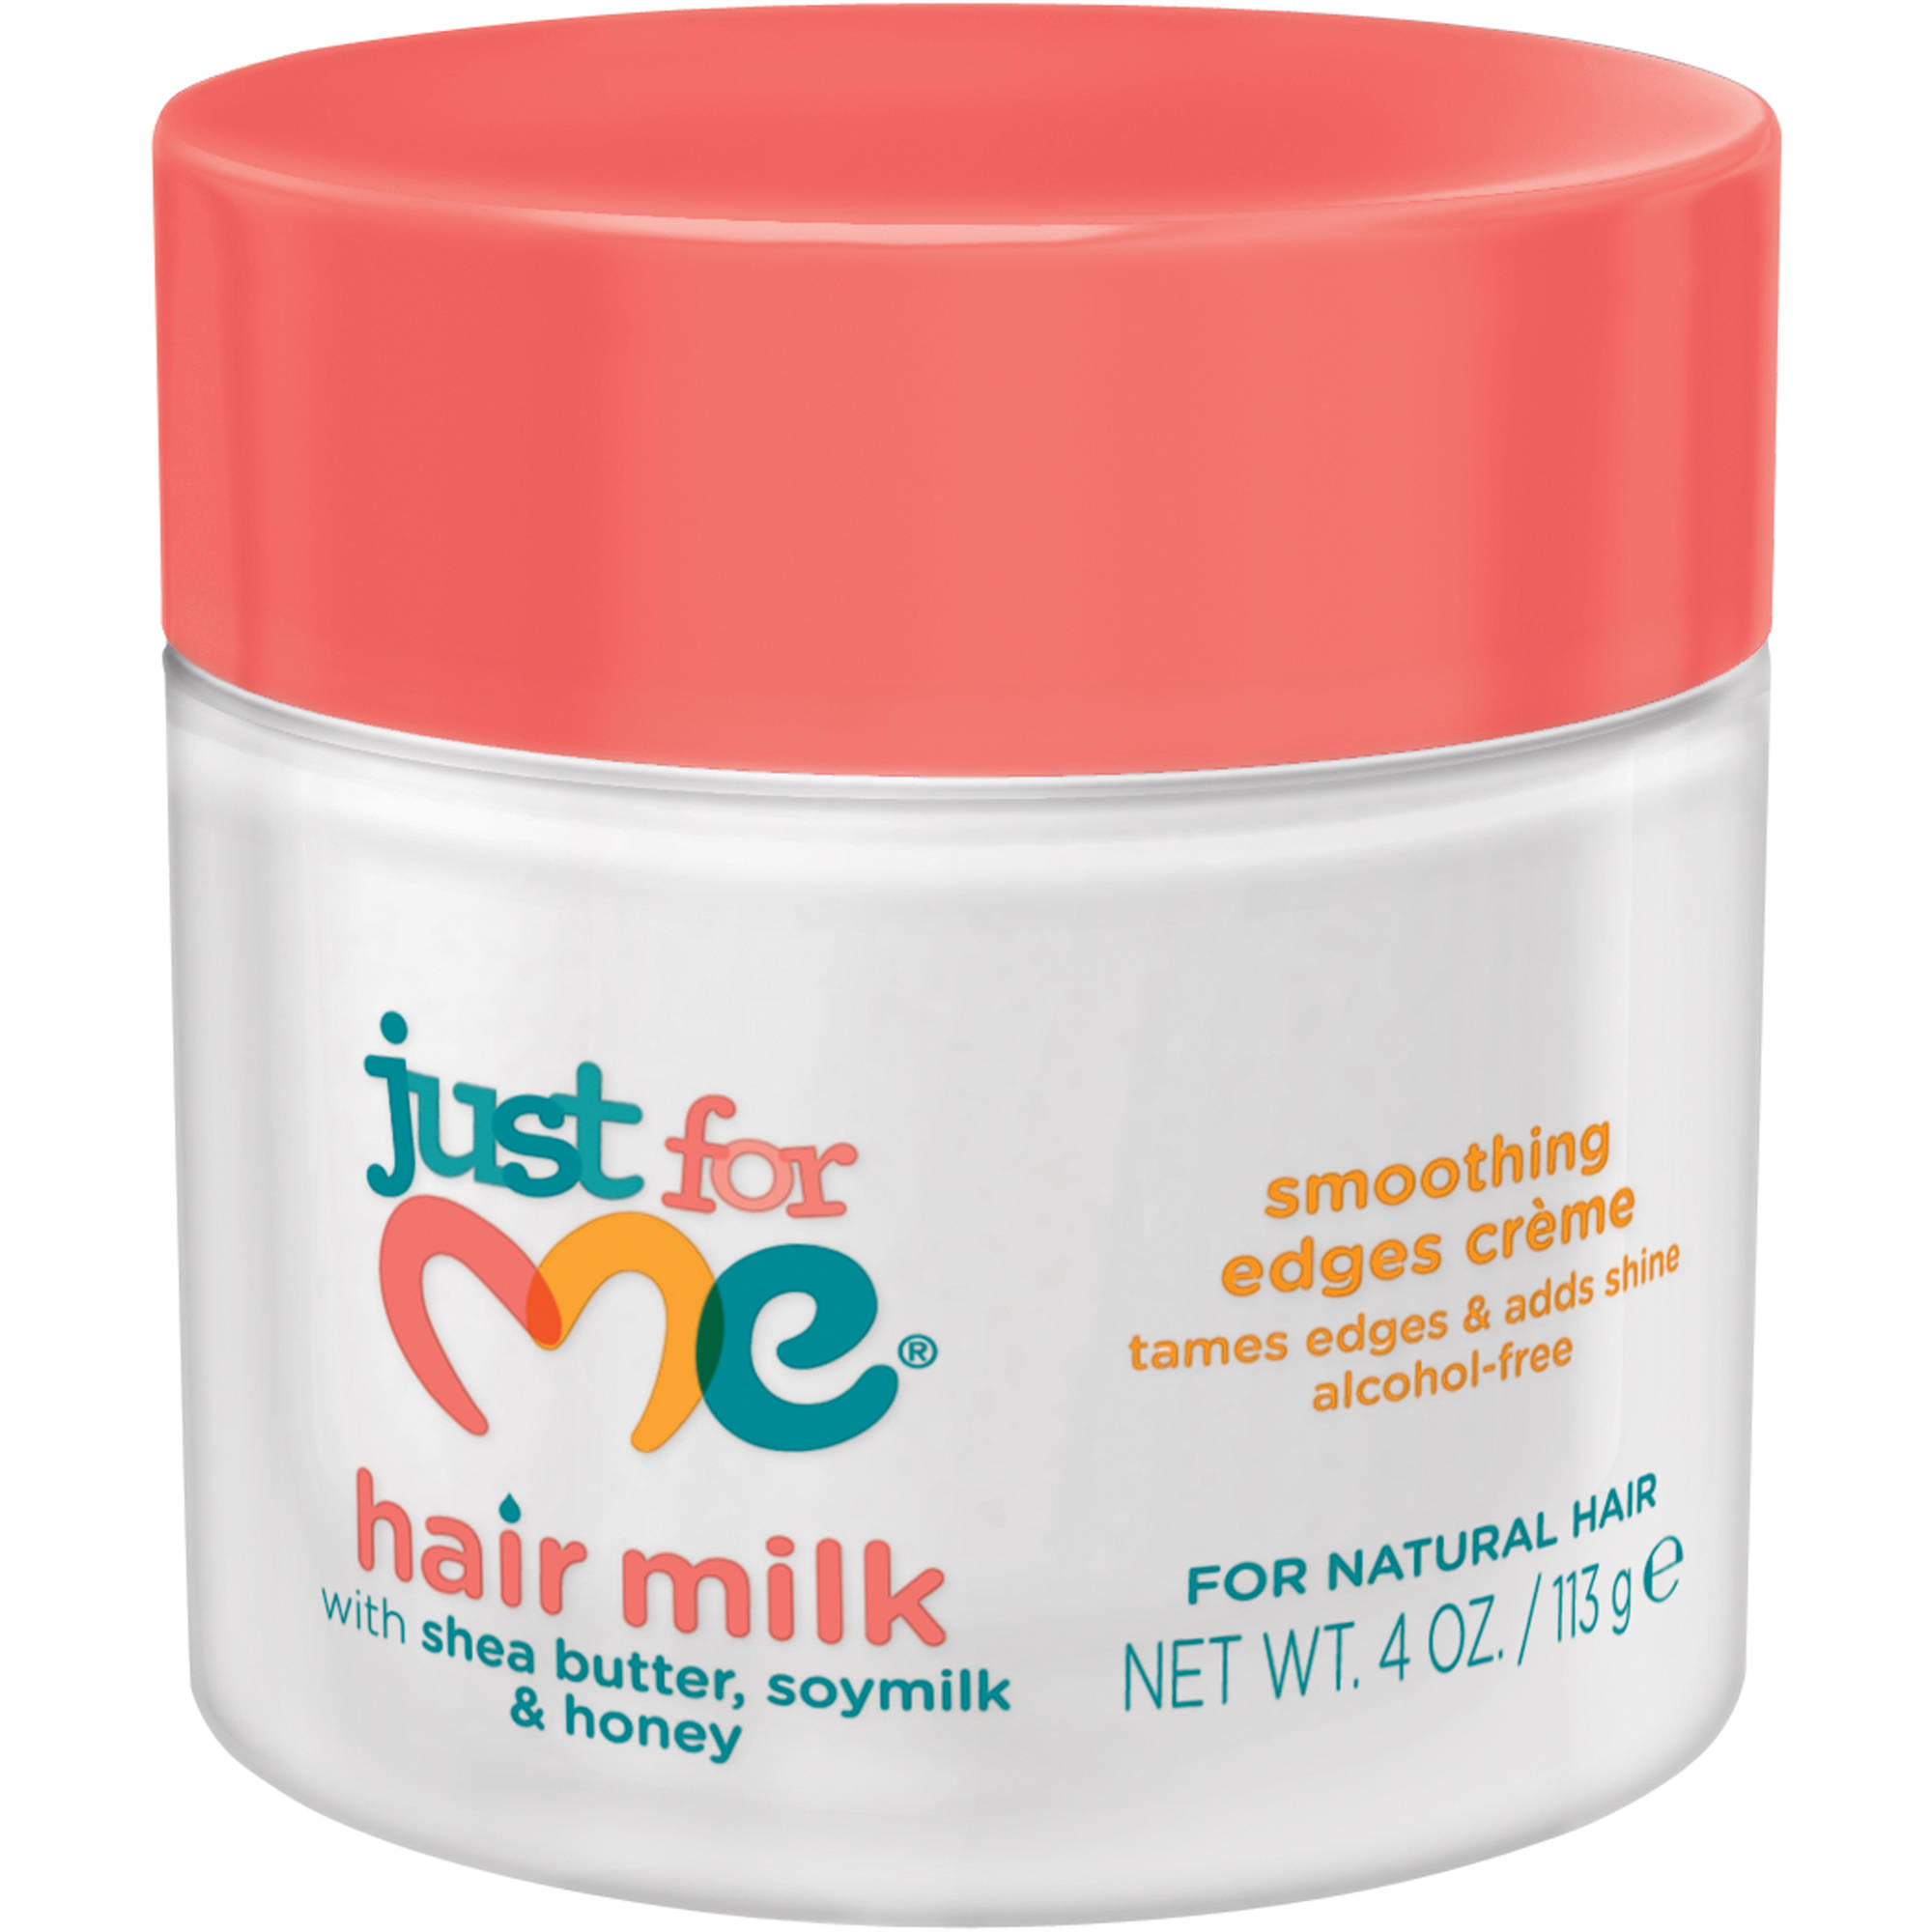 Just For Me Hair Milk Smoothing Edges Creme Styler 4 Oz